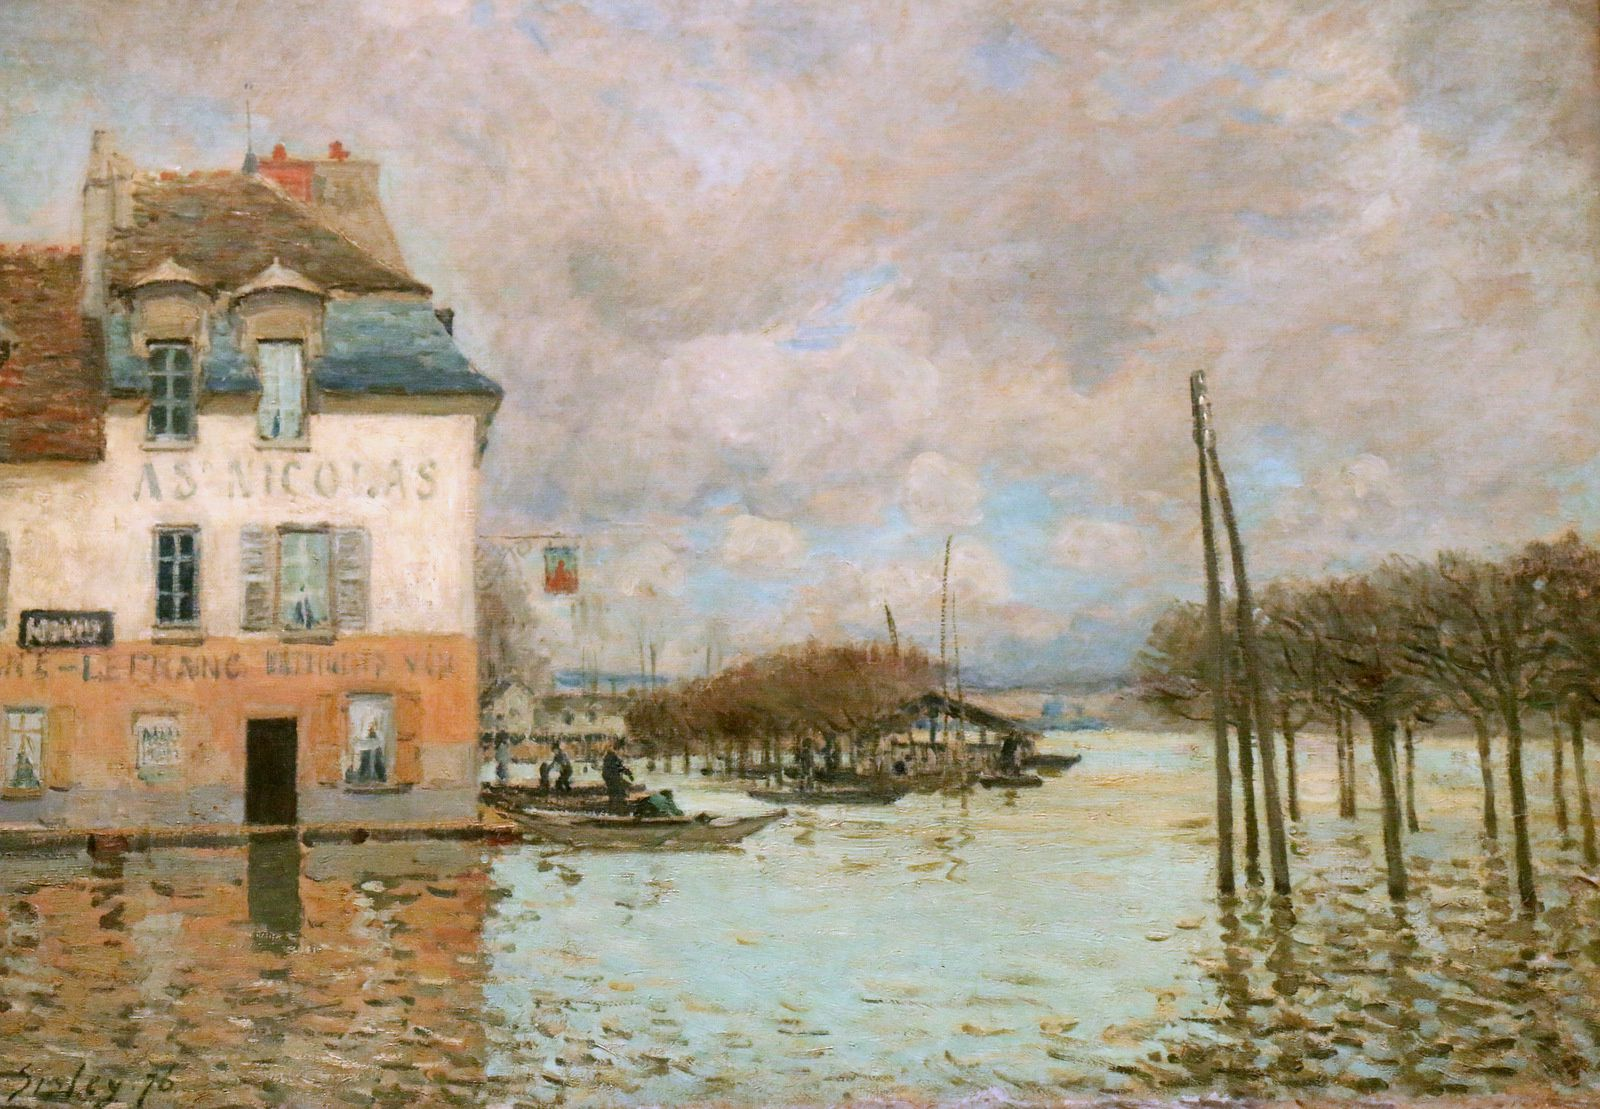 L'inondation à Port-Marly, huile sur toile d'Alfred Sisley